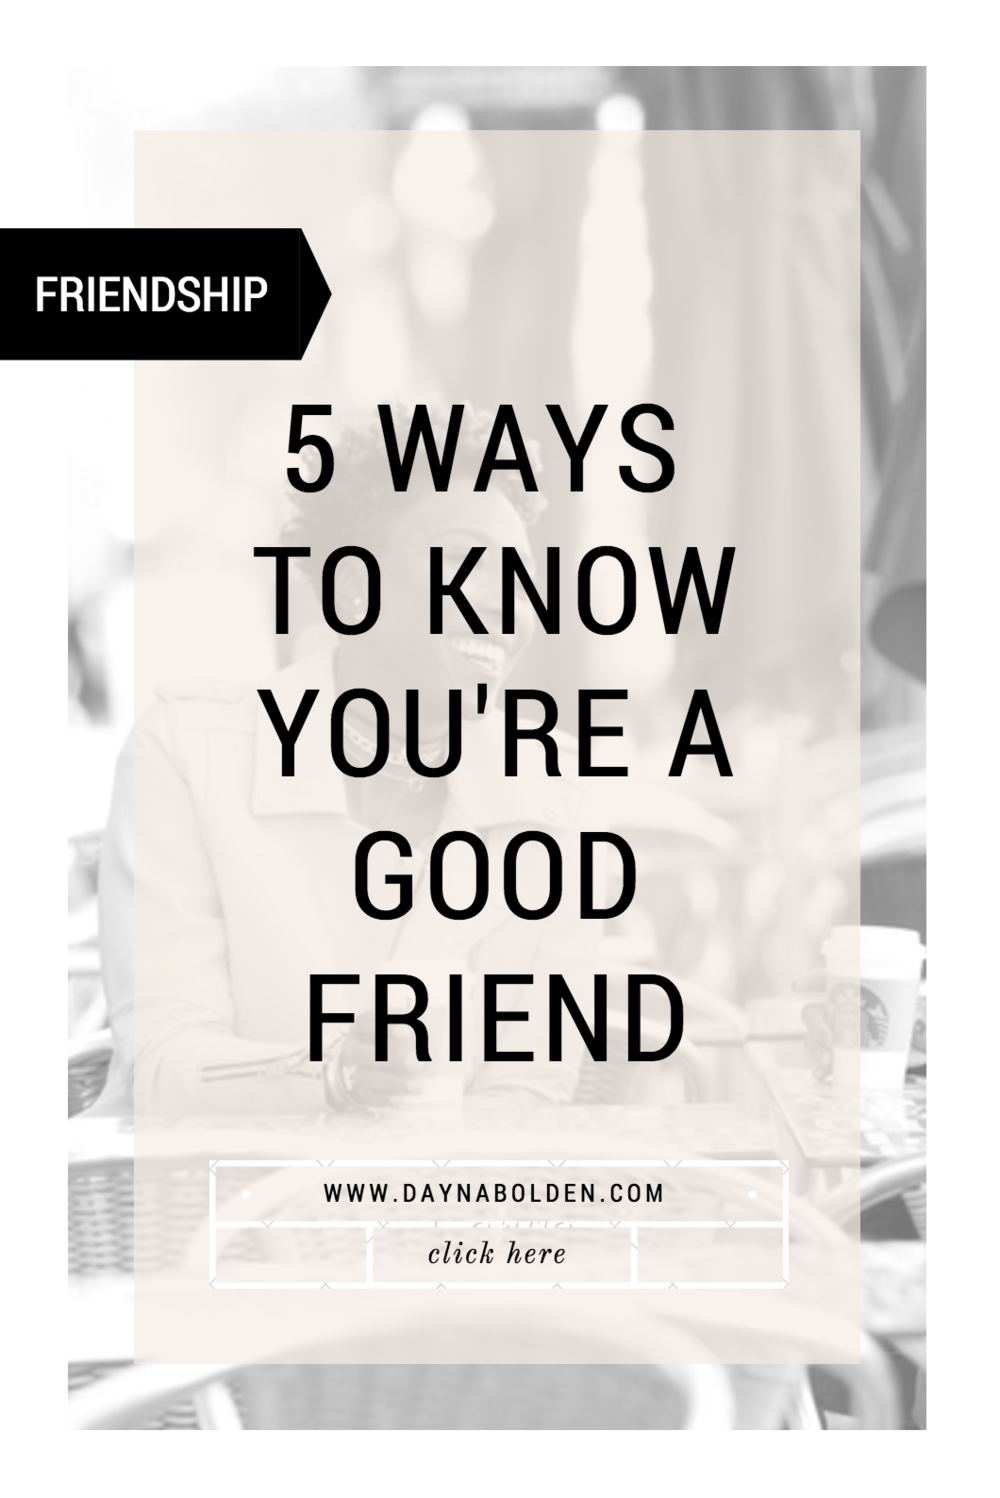 5-ways-to-know-you-are-a-good-friend-friendship-dayna-bolden